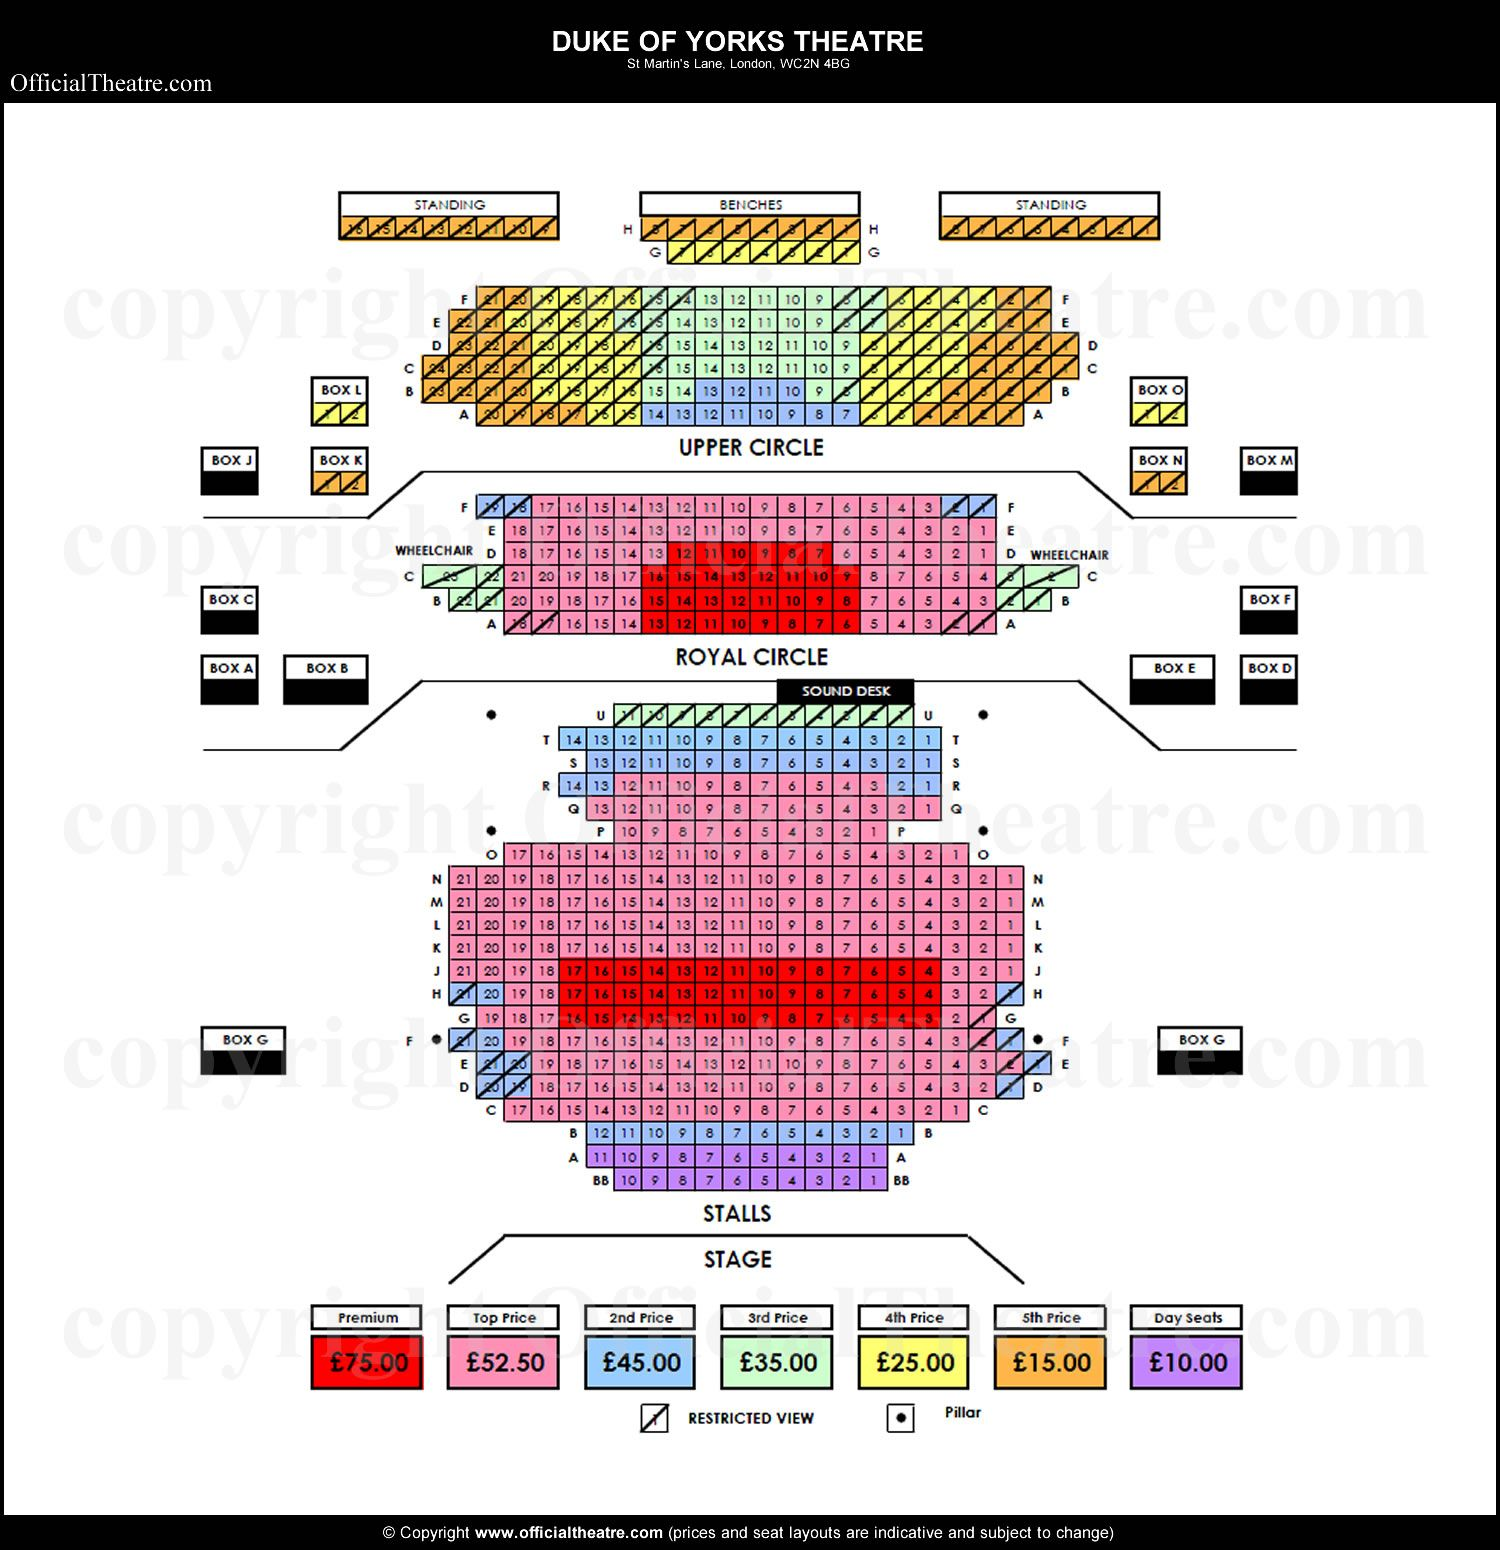 Duke of York s Theatre and Ink seating chart and seat price guide to what seats you can for your money